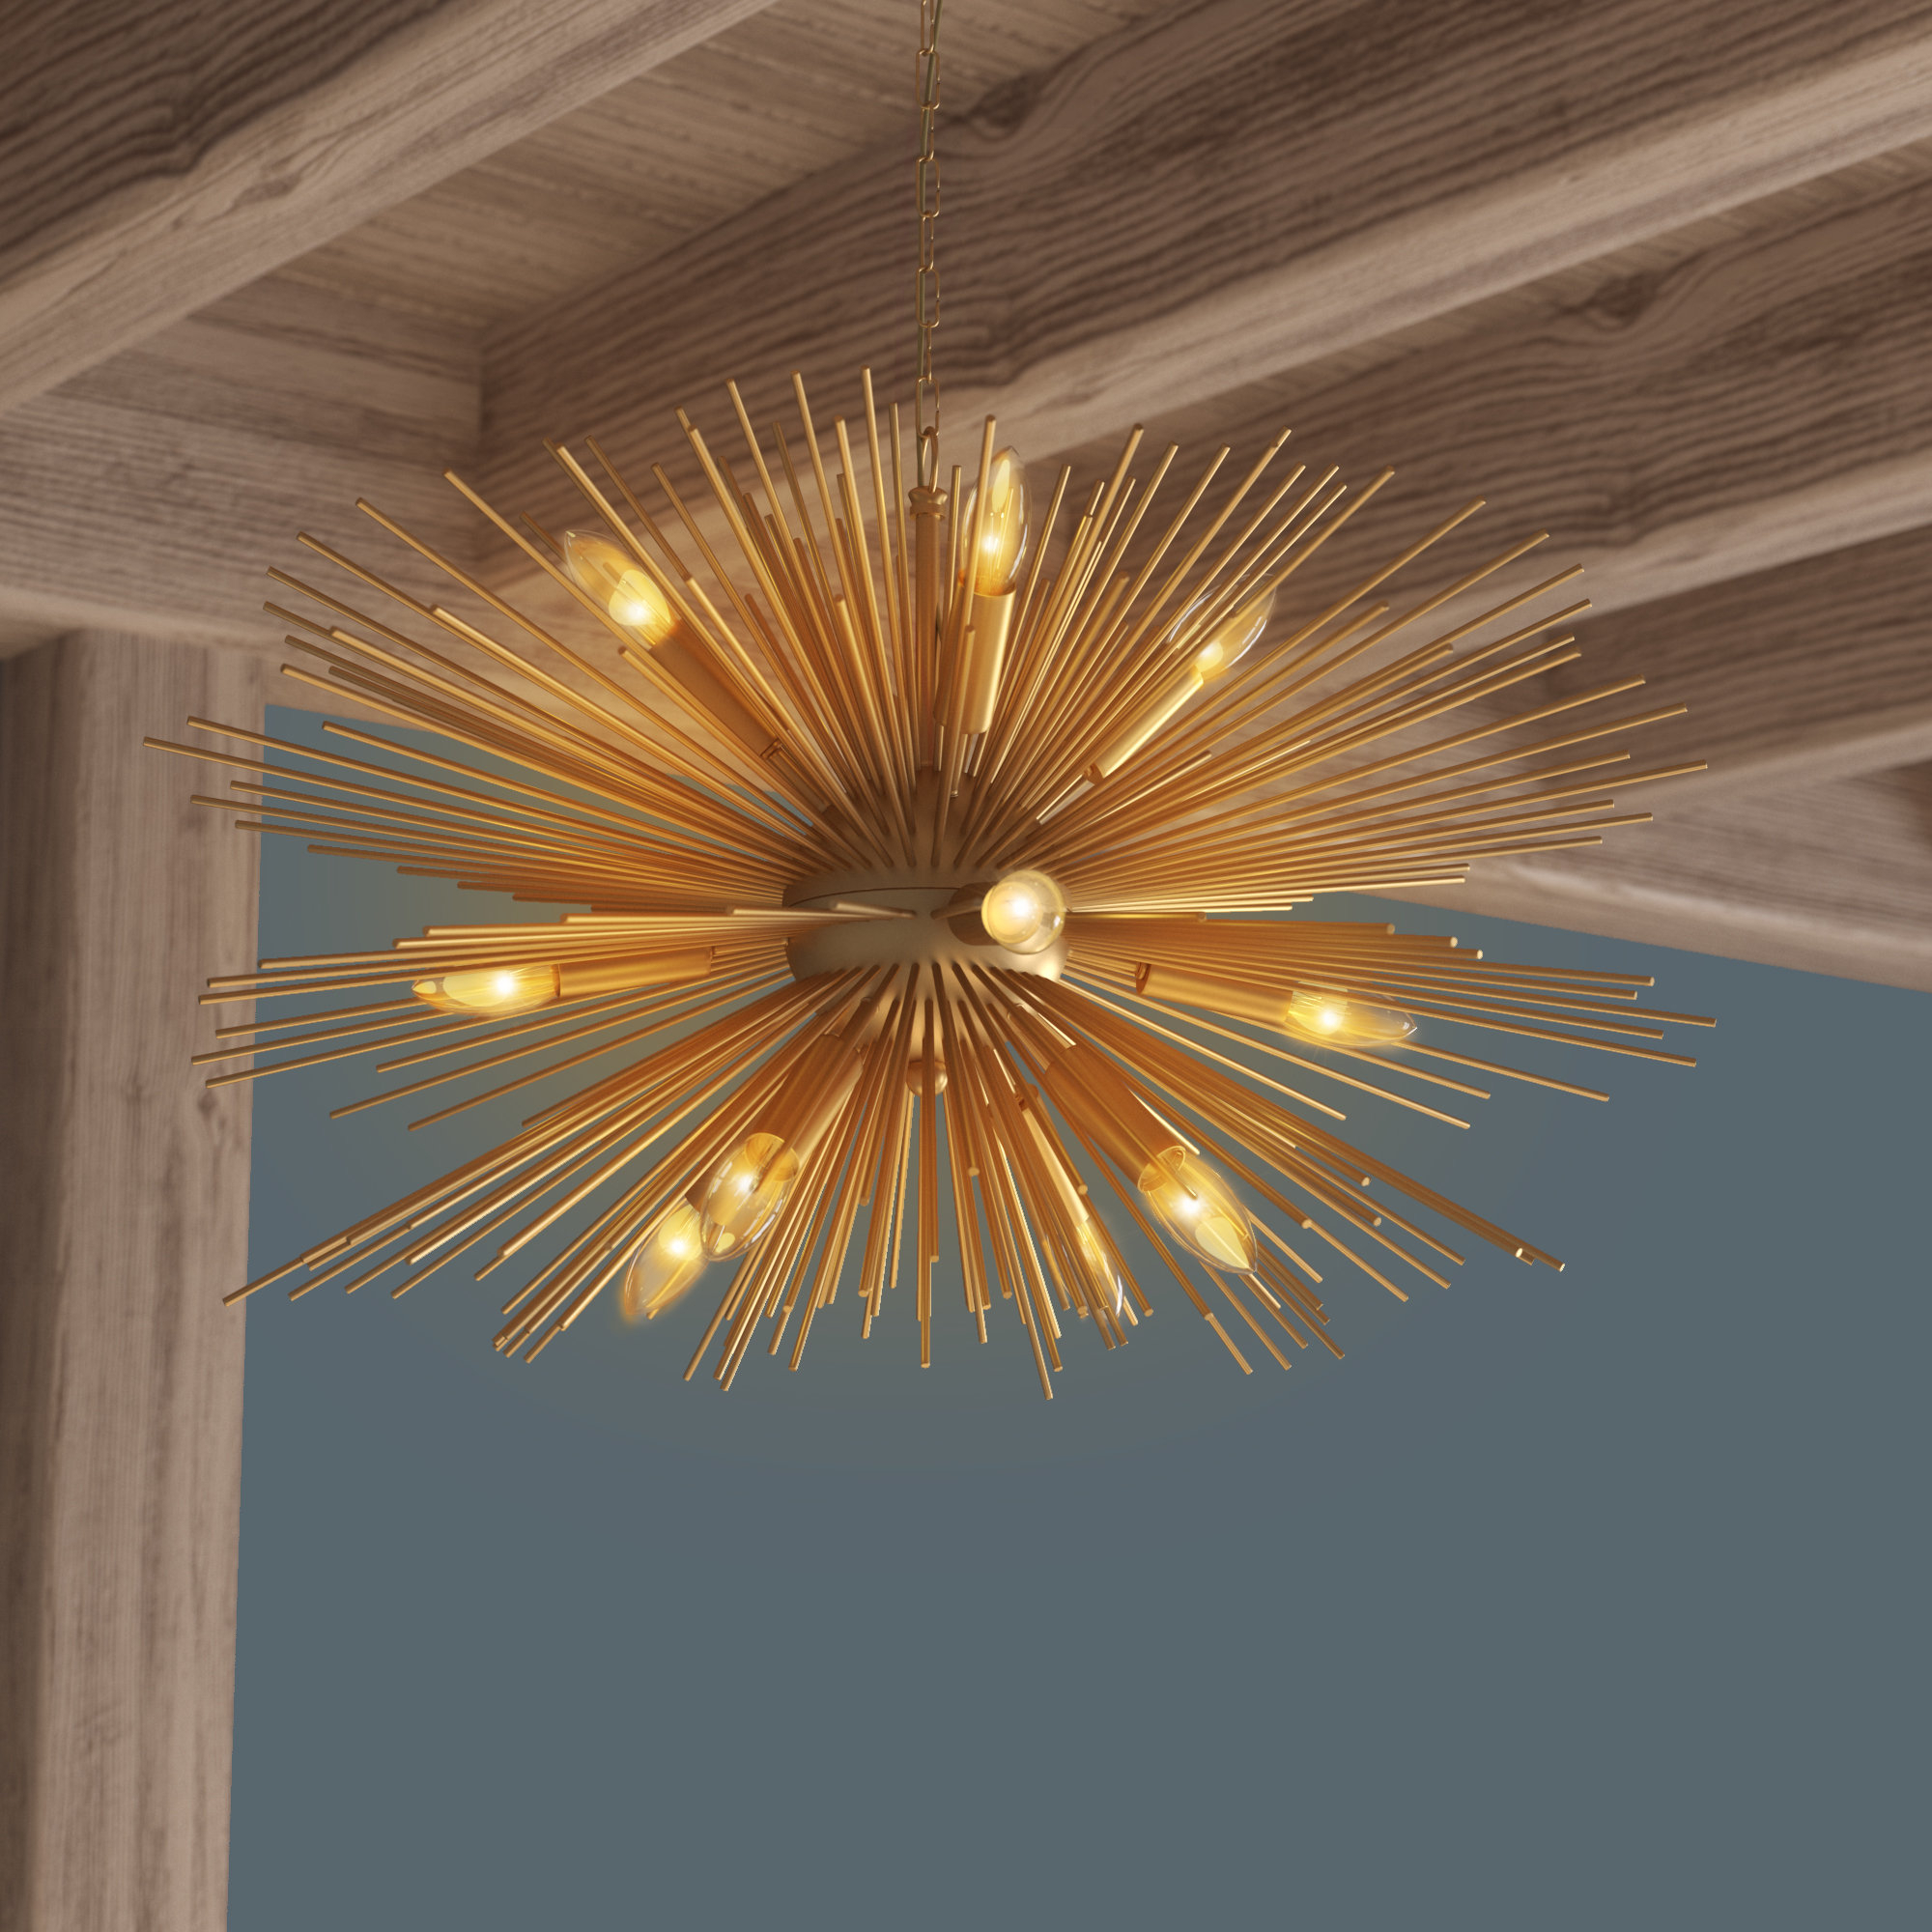 Nelly 12-Light Sputnik Chandelier with Well known Nelly 12-Light Sputnik Chandeliers